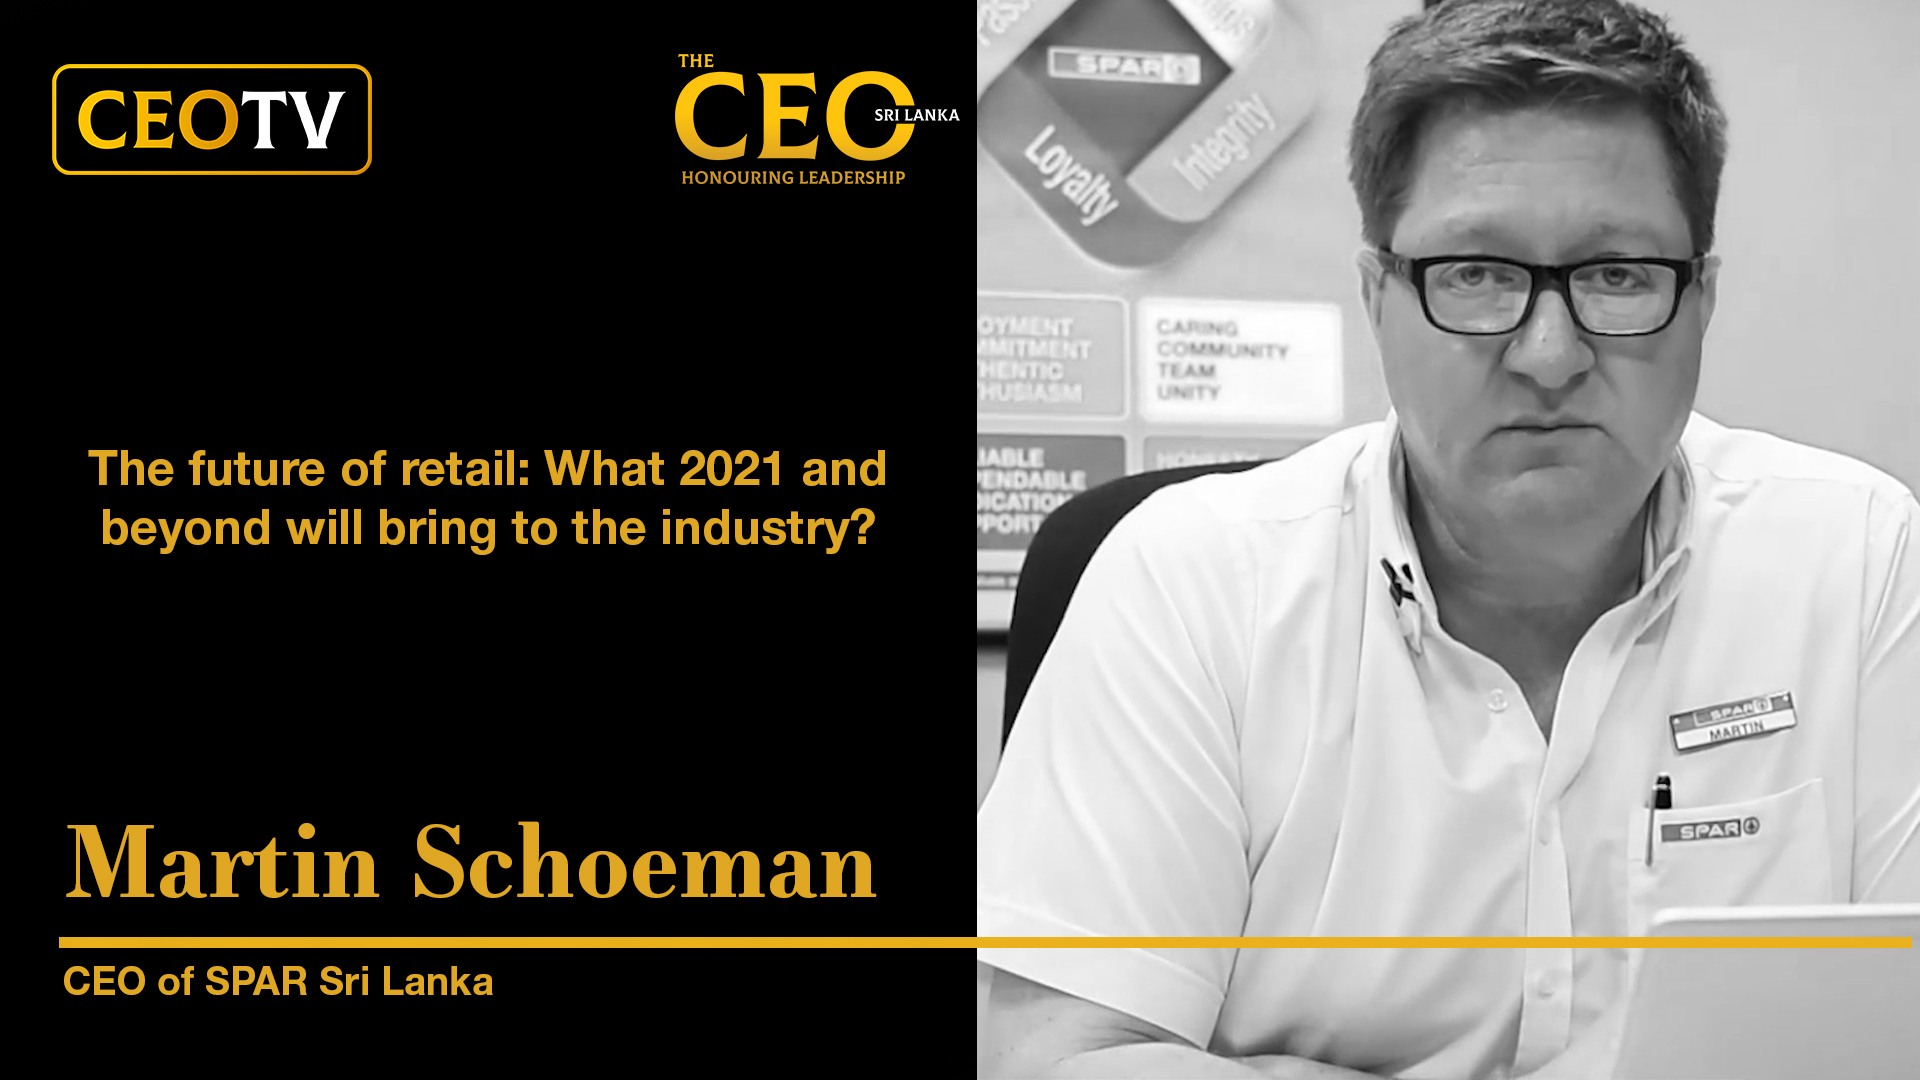 CEO TV – An interview with Mr. Martin Schoeman, the CEO of SPAR Sri Lanka